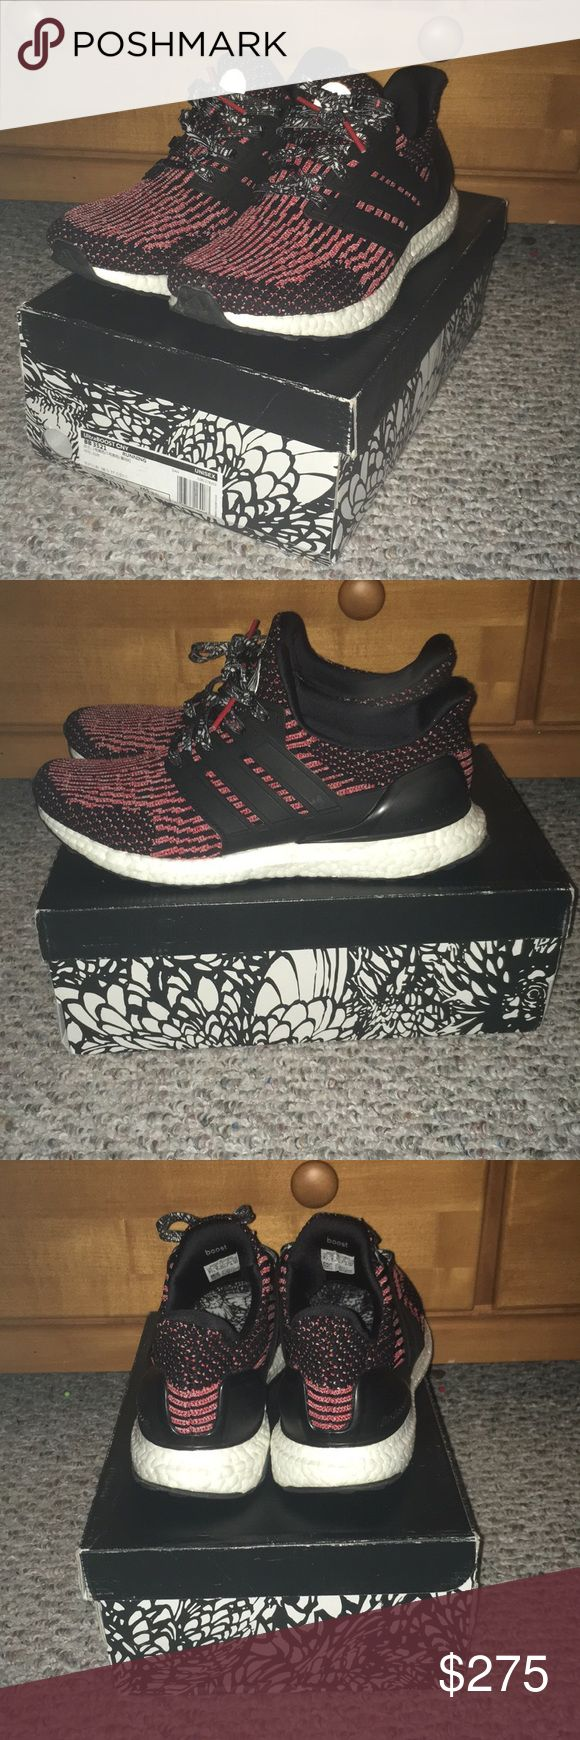 !!!LIKE NEW!!! CNY ultraboost 3.0 Worn 3 times and that's it! CNY ultraboost 3.0. Very comfortable shoe as many say, has soft boost, and a very clean color way! I wore these once to school, once to Atlanta, and once in the House, all while being as careful as I could with them. Everything comes from a smoke free home and is cleaned and deodorized before shipment! 275 (OR BEST REASONABLE OFFER NO LOW BALLERS), these go anywhere from 285 to 400 else where so in my opinion, its a fair price. If…